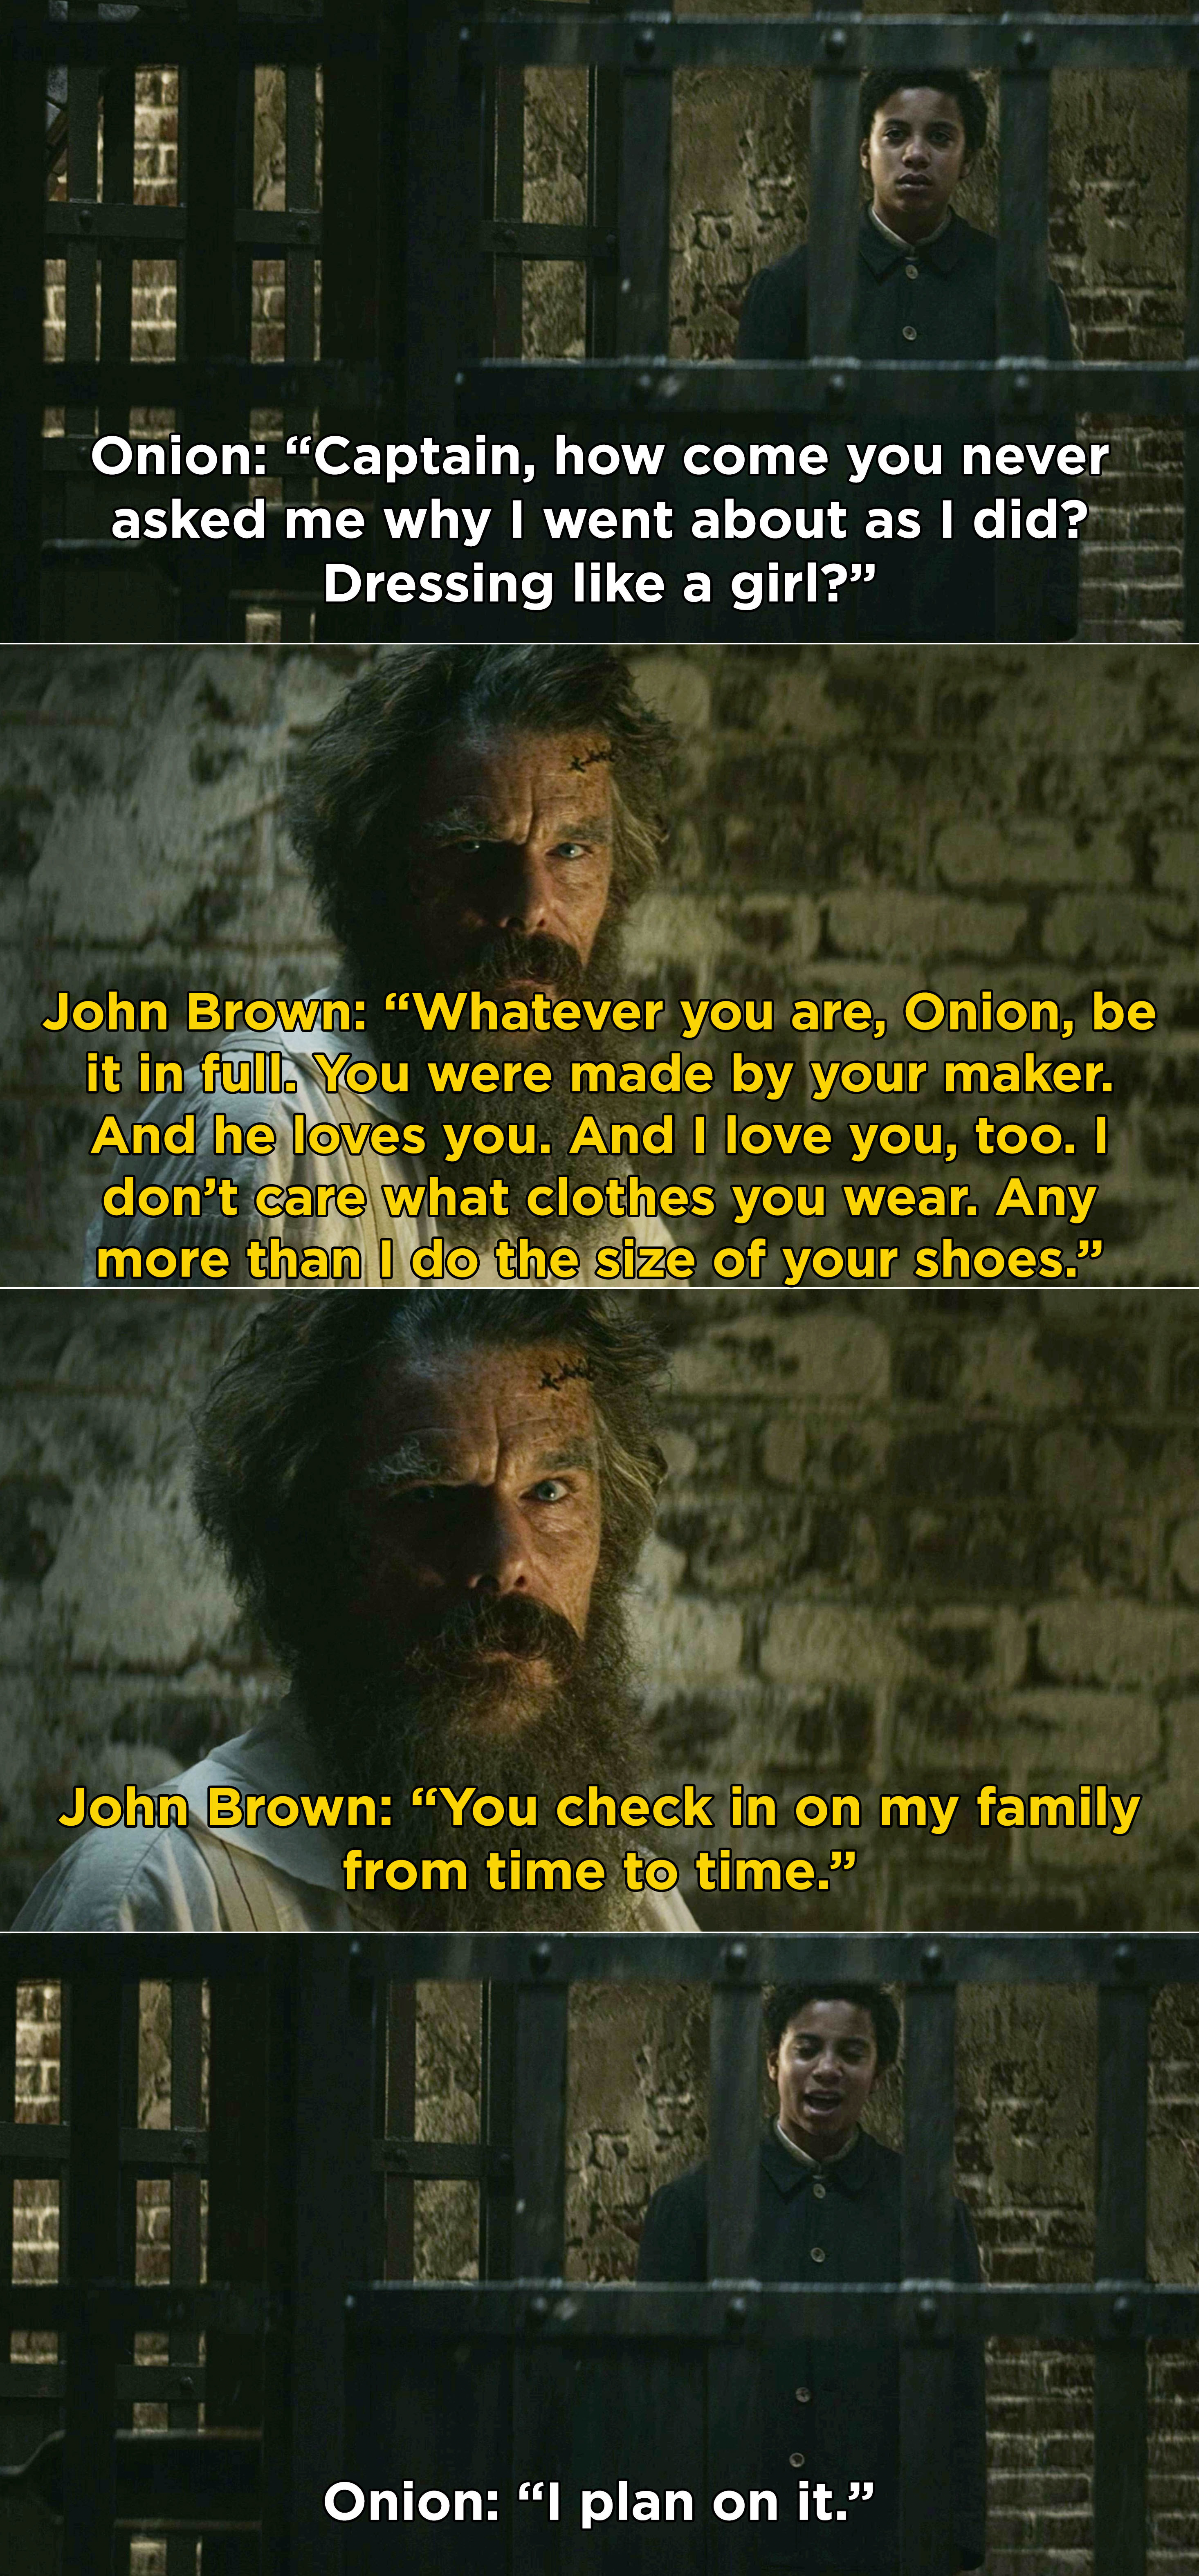 John Brown saying that he loves Onion and asking if he could check in on his family